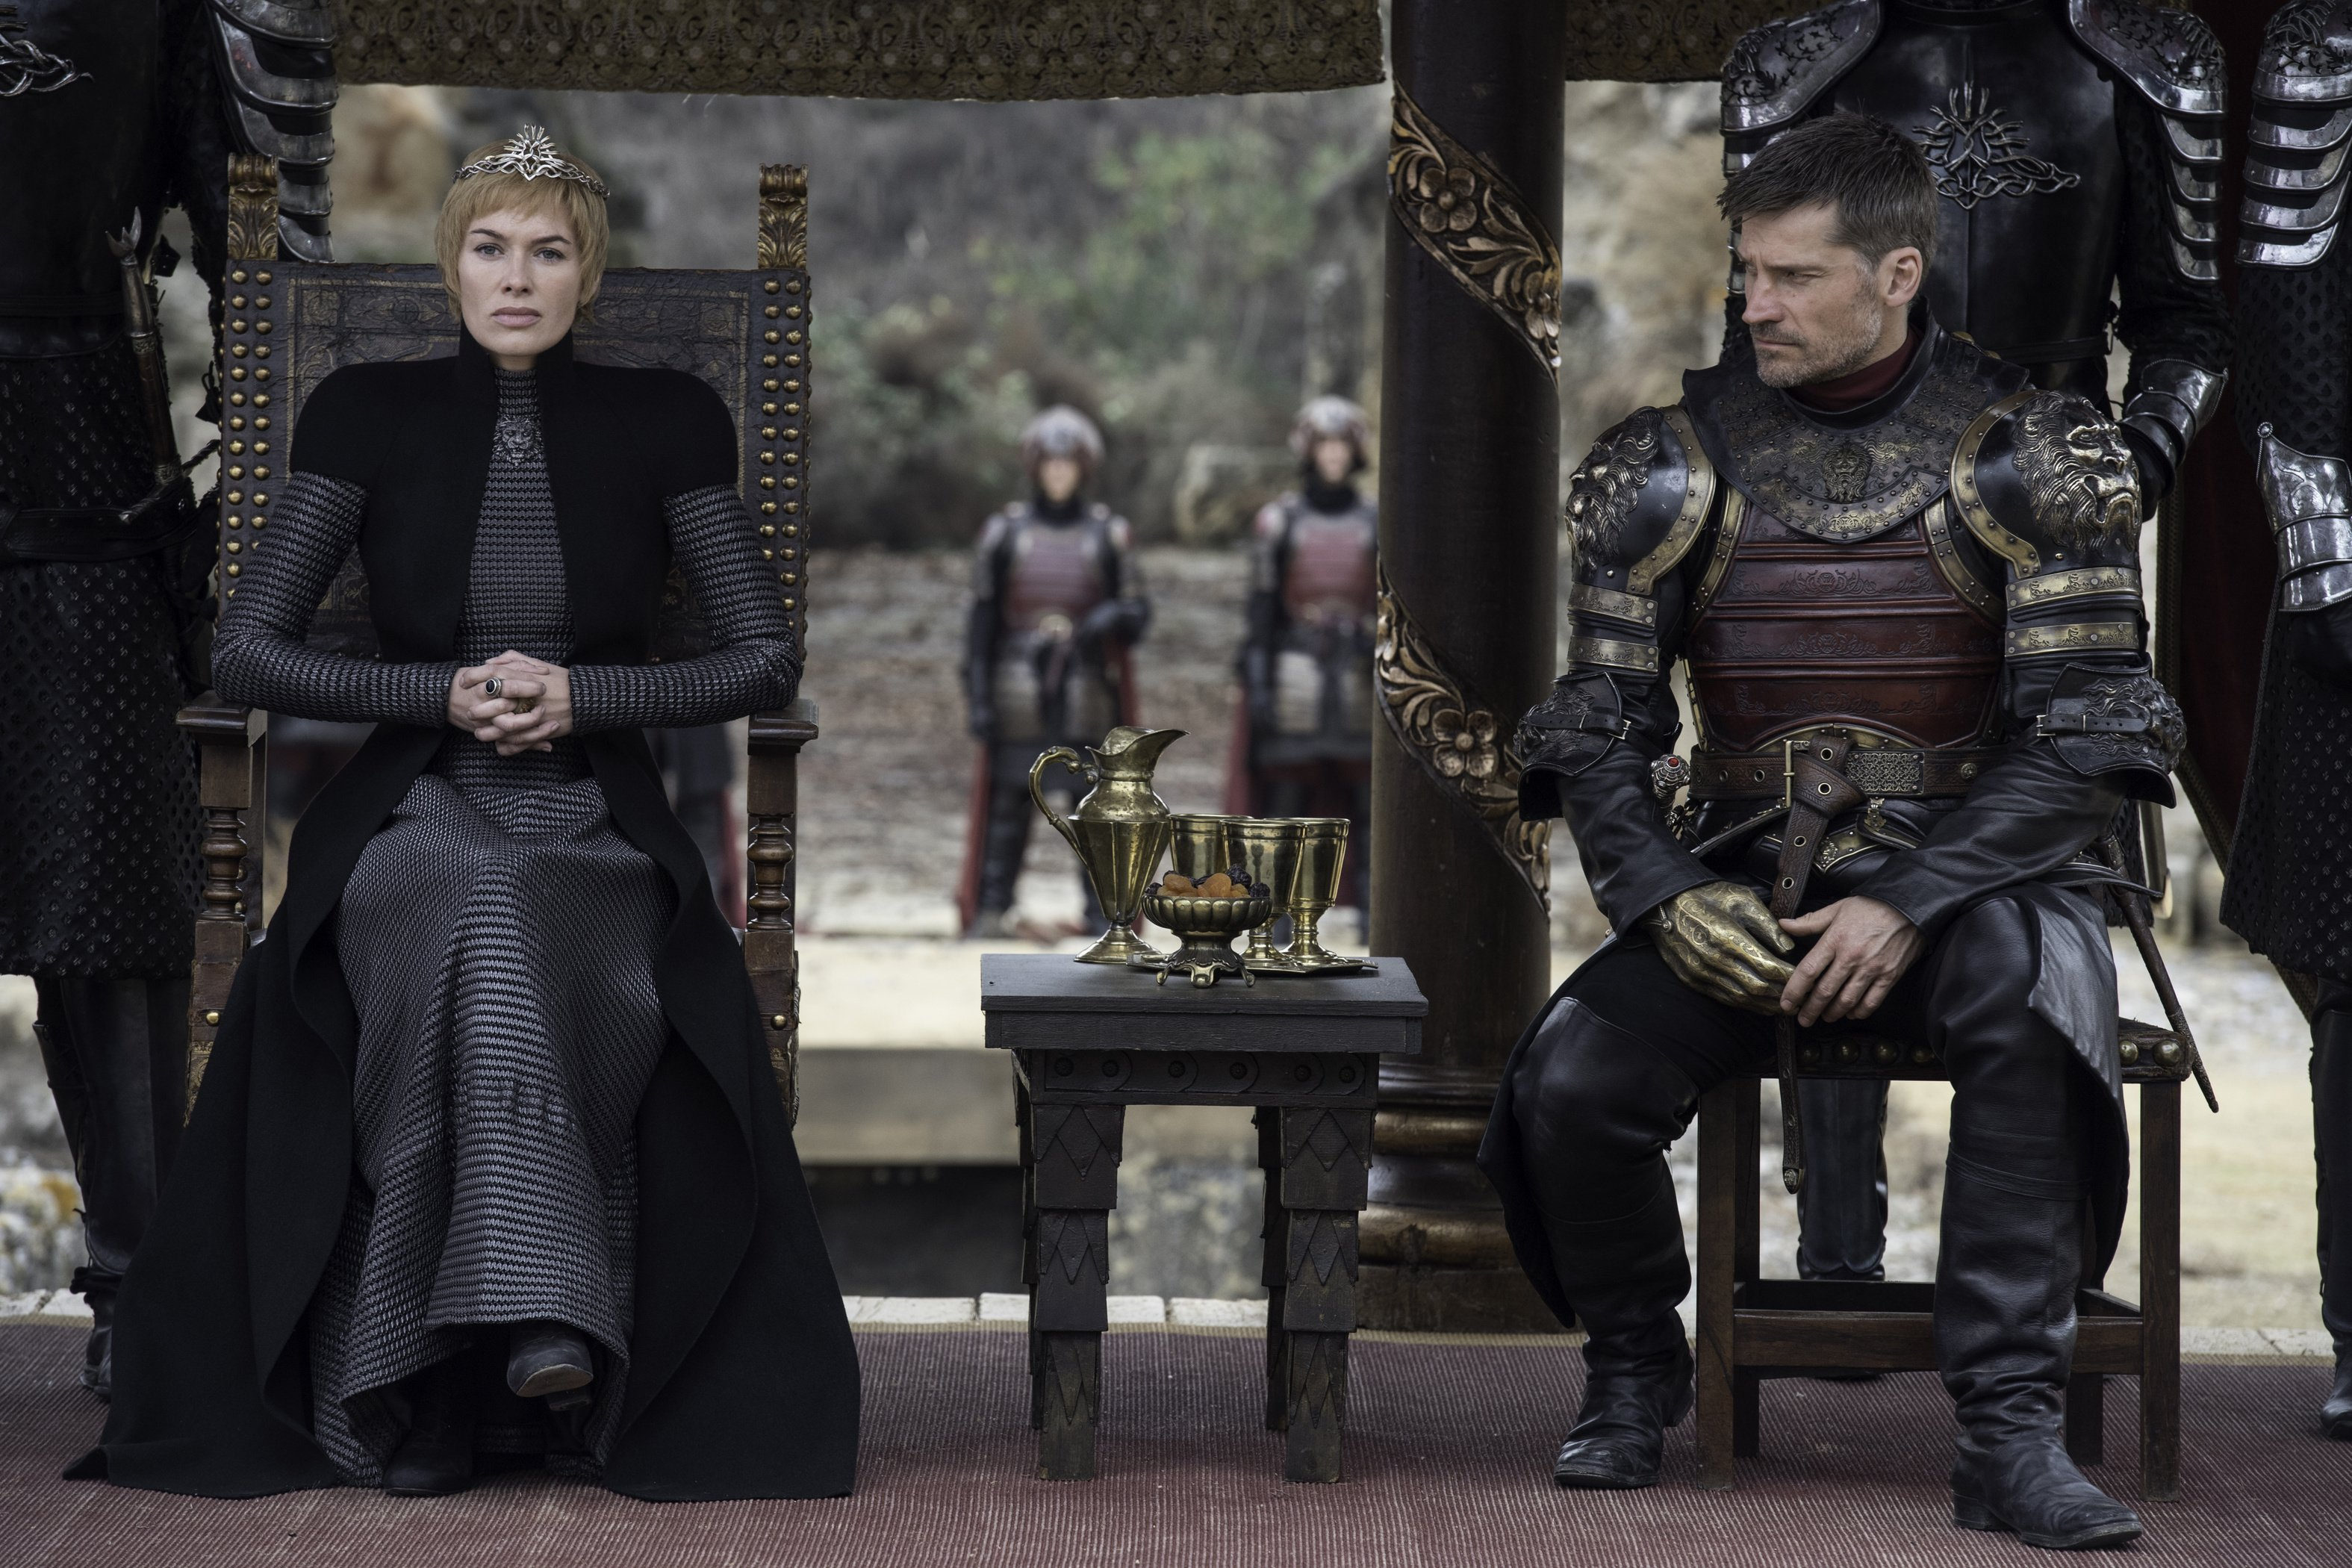 Photo de l'épisode Le Dragon et le Loup de la saison 7 de Game of Thrones avec Cersei et Jaime Lannister